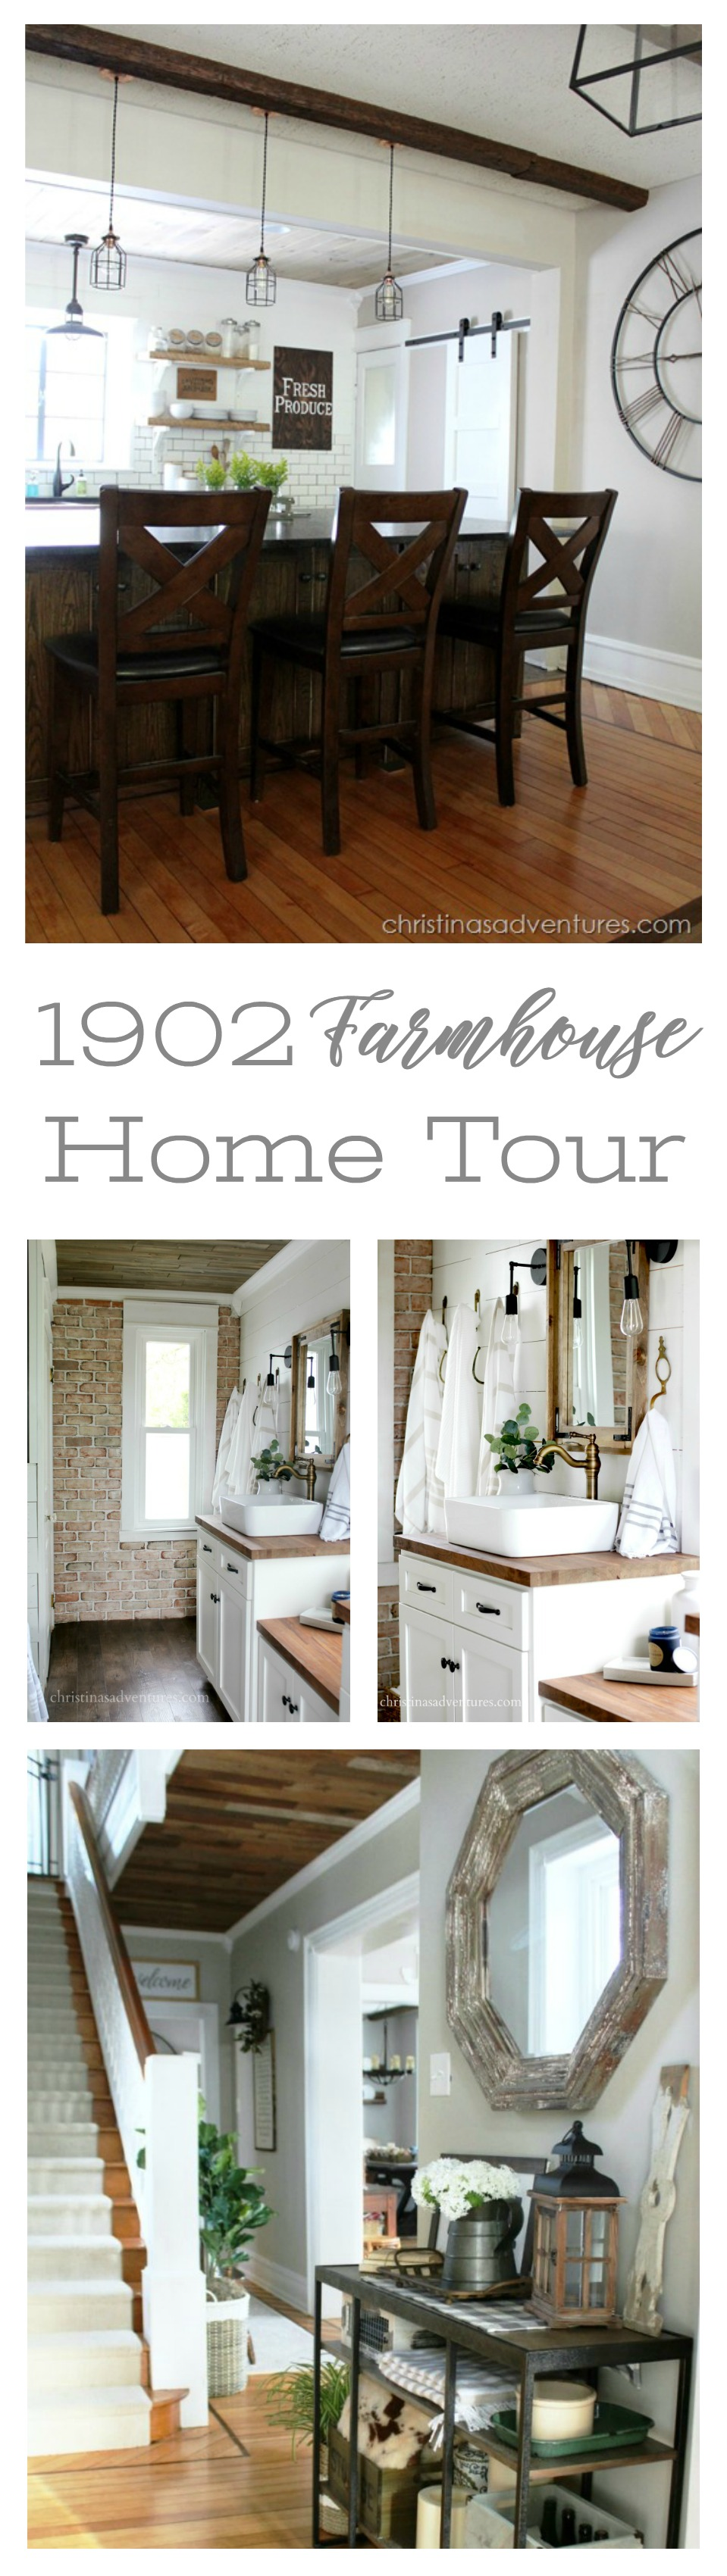 1902 Victorian Farmhouse Home Tour with Christina's Adventures